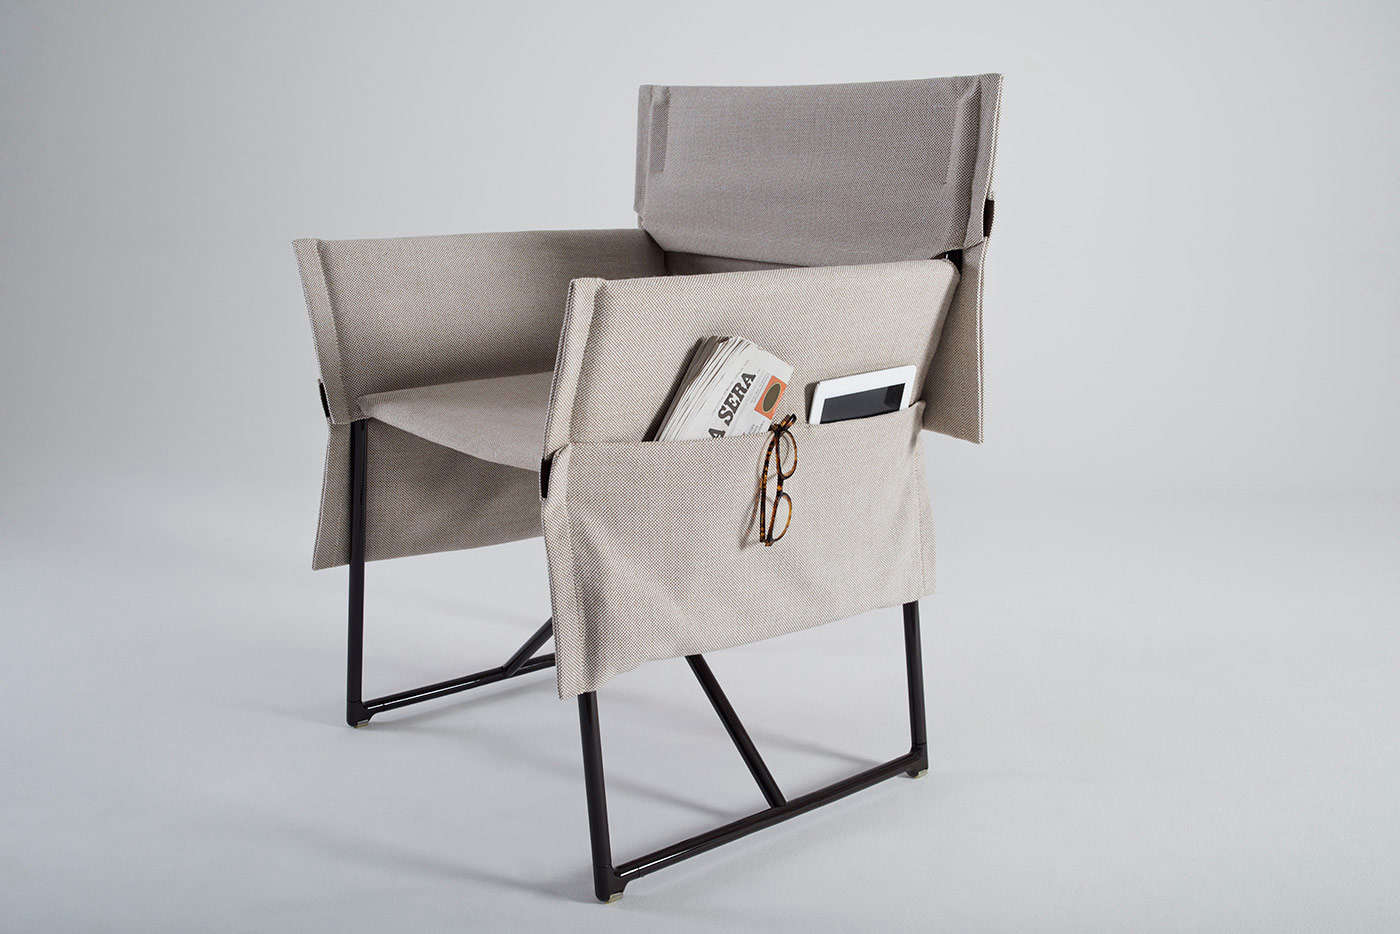 Outdoor Furniture: Folding Camp Chairs From Italy